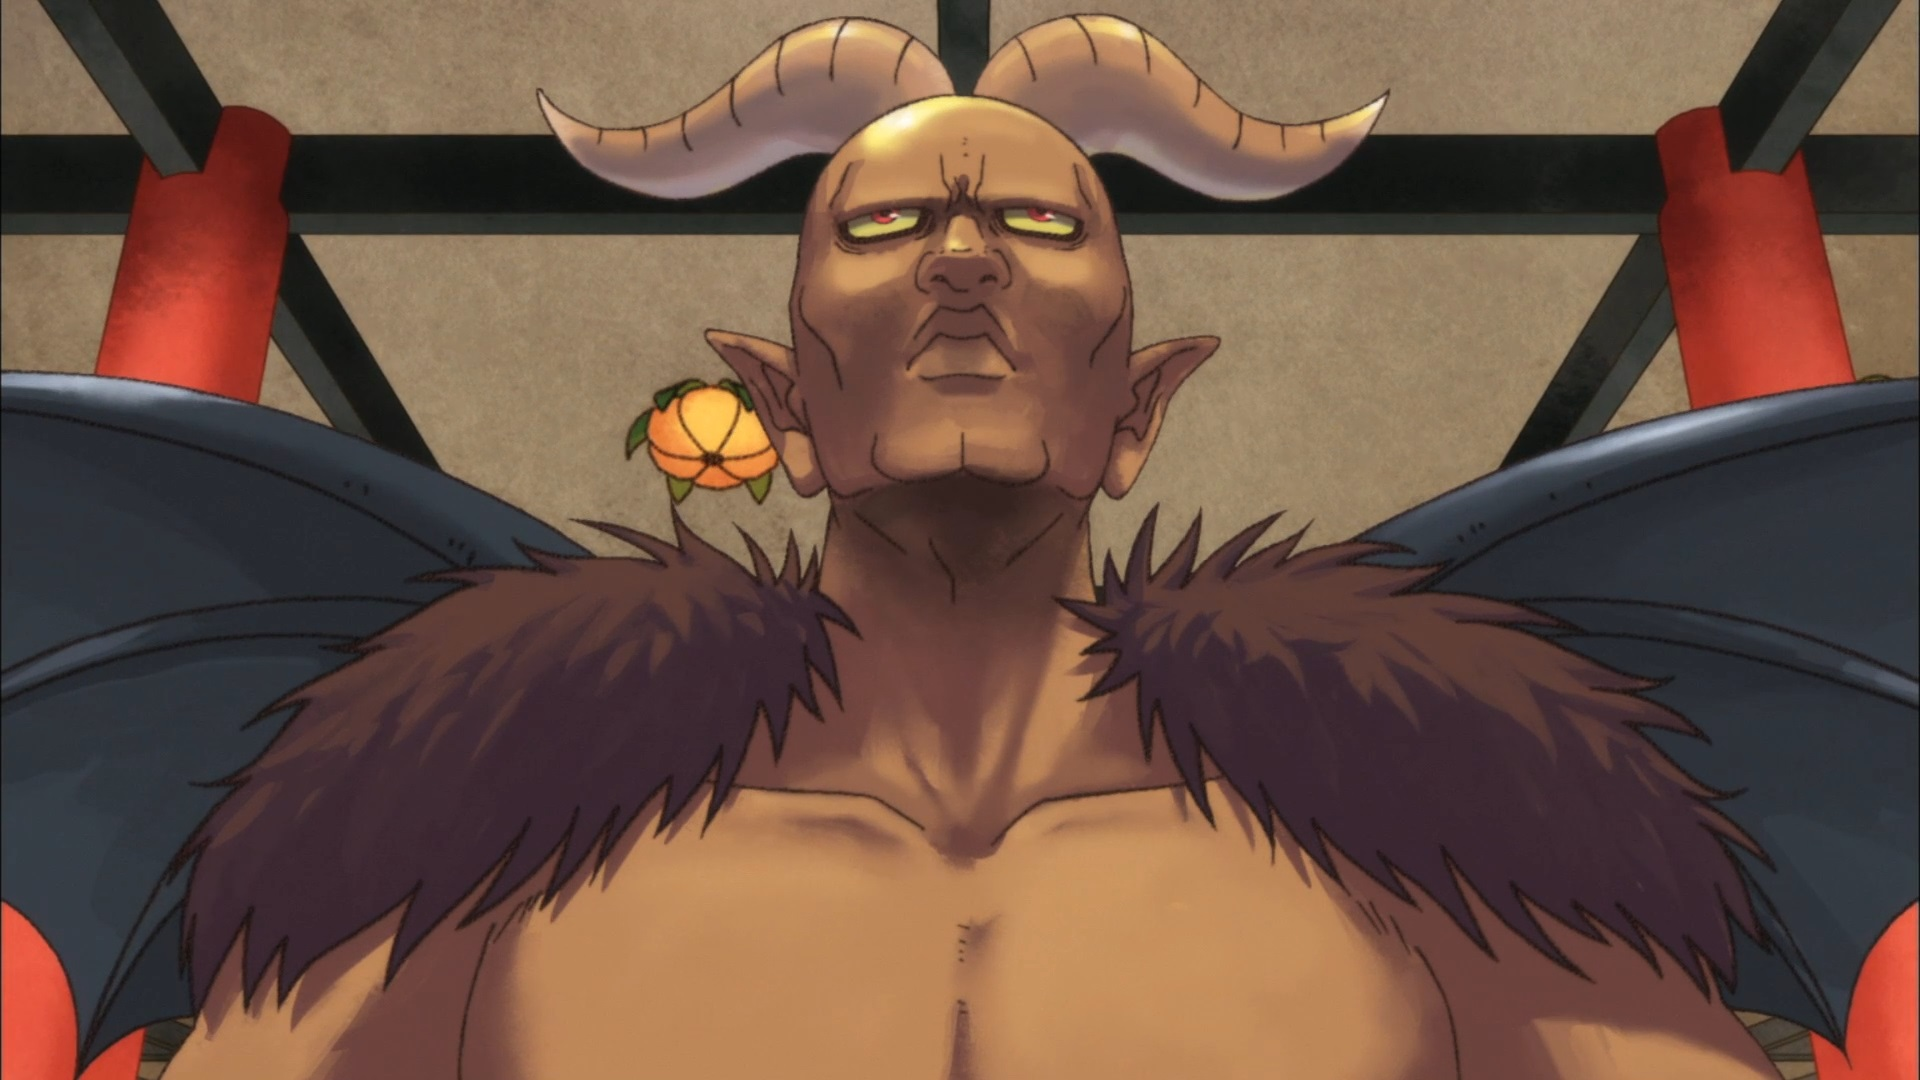 Satan, the ruler of European Hell, attempts to look regal and imposing while visiting Japanese hell in a scene from the Hozuki's Coolheadedness TV anime.